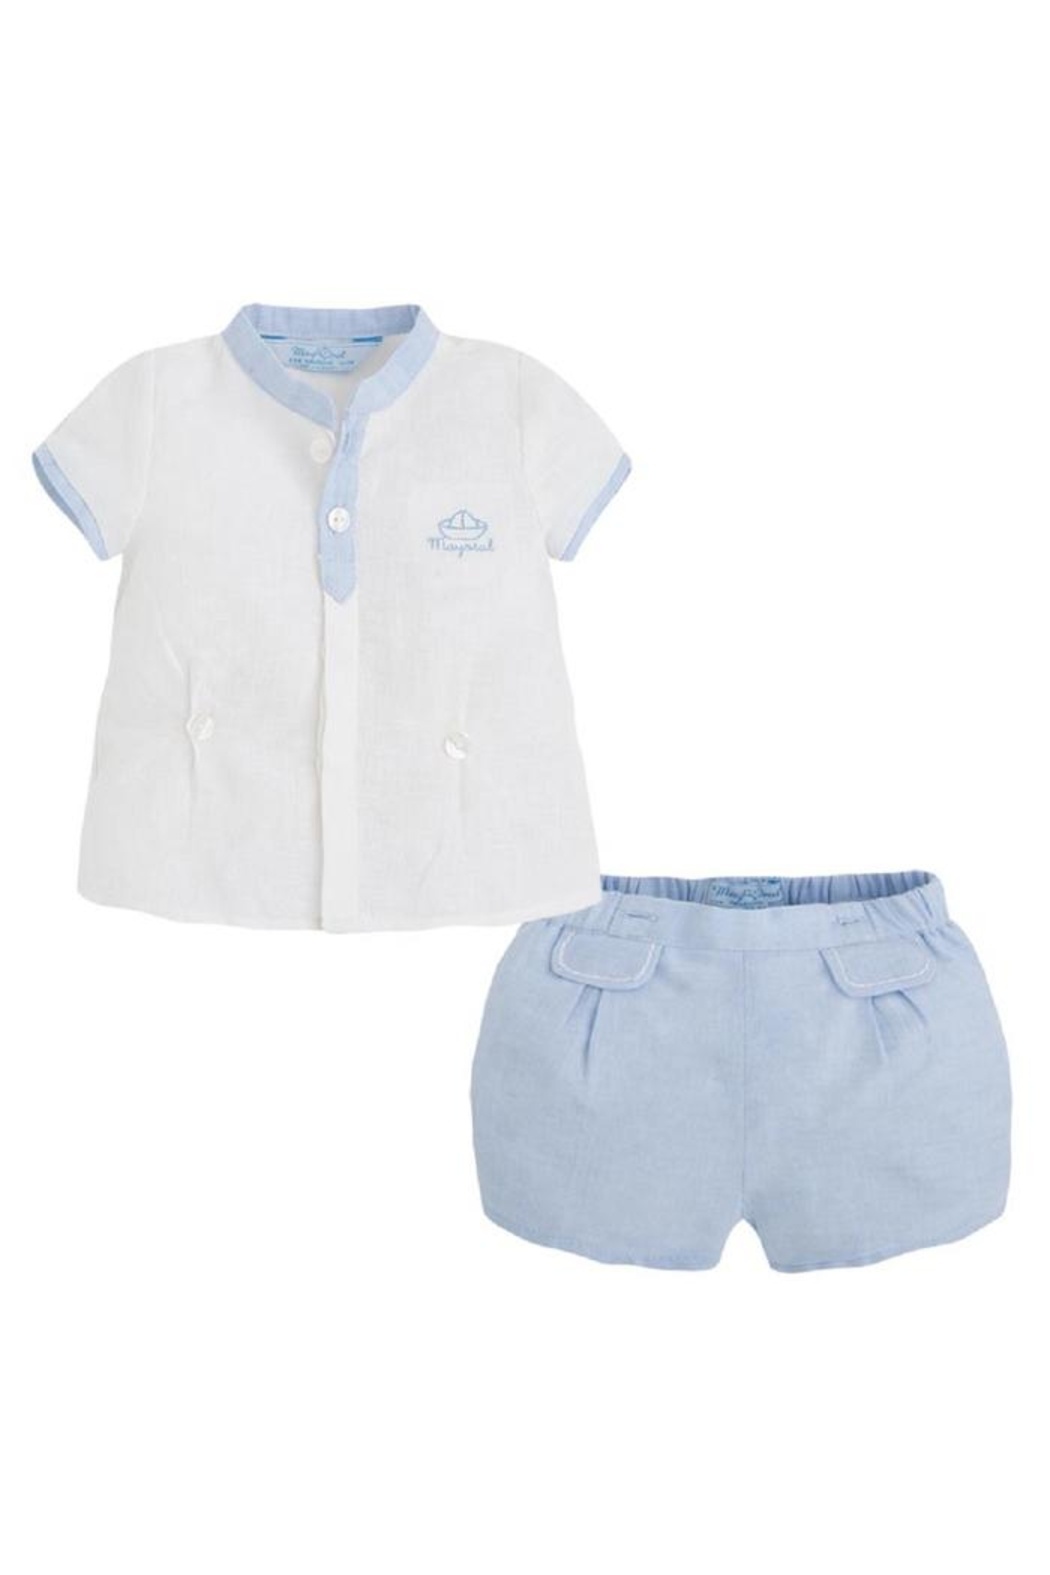 Mayoral Short & Tee Set - Main Image